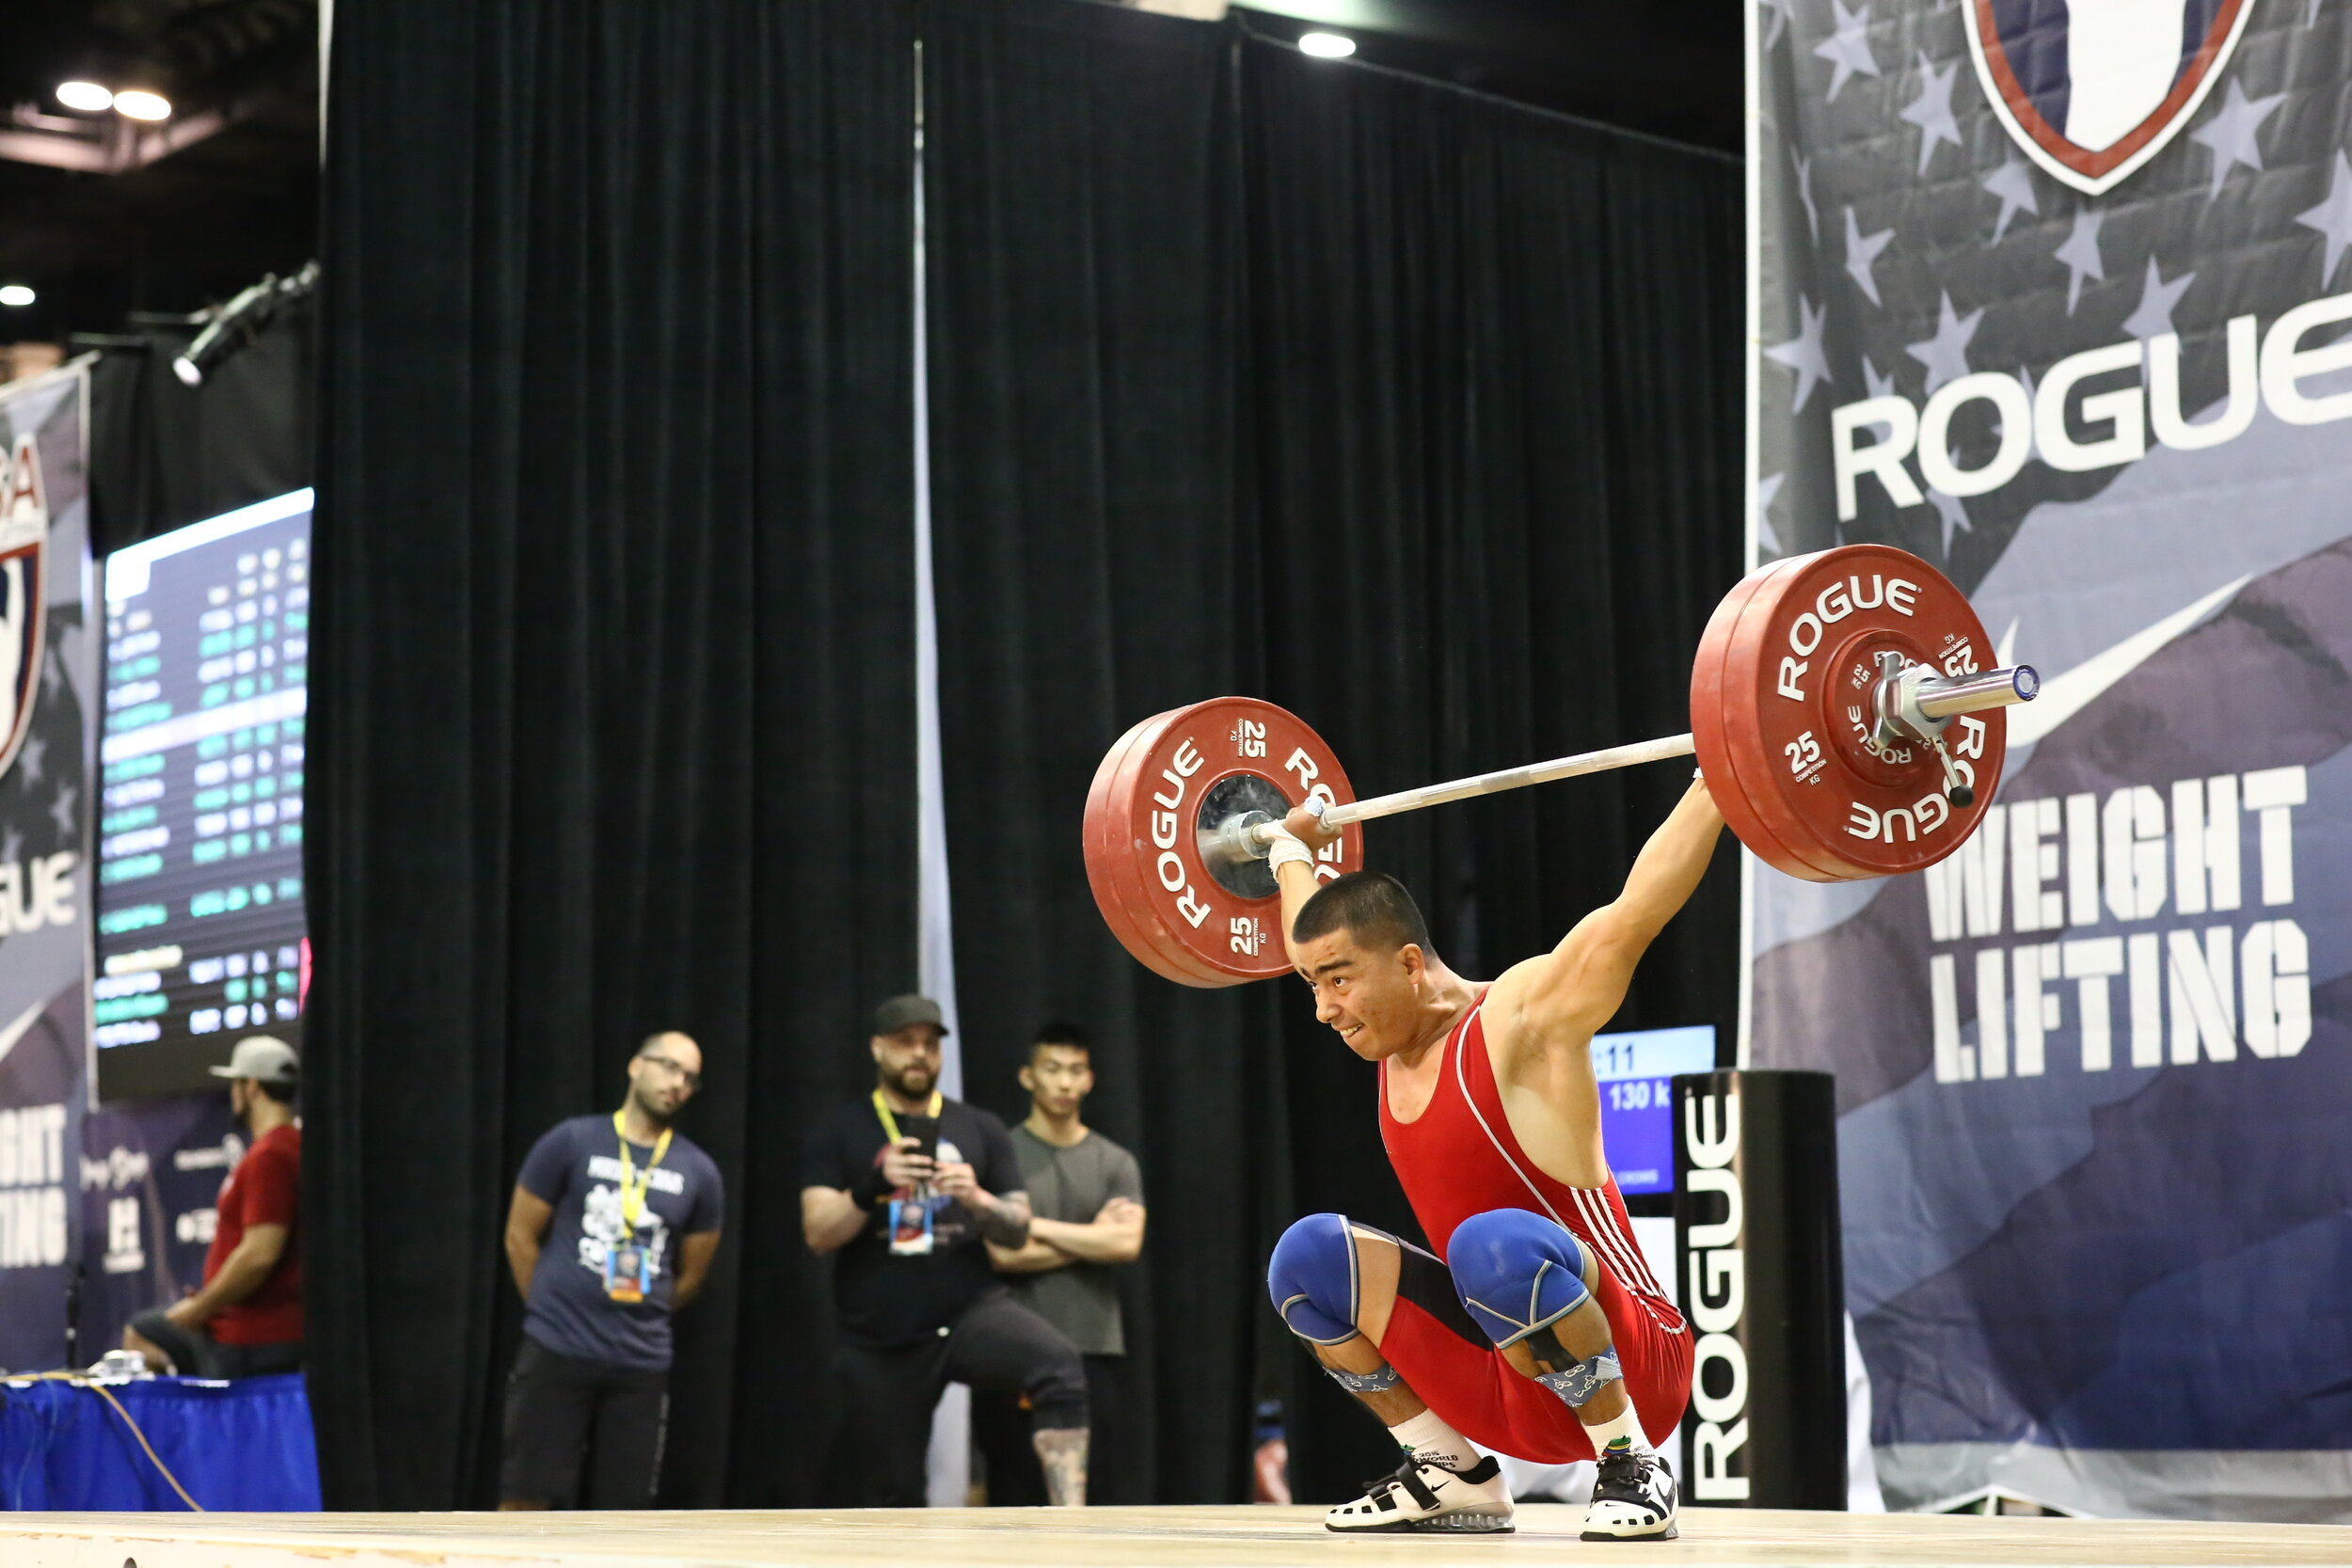 WEIGHTLIFTING - Weightlifting is the only barbell sport contested in the Olympics.